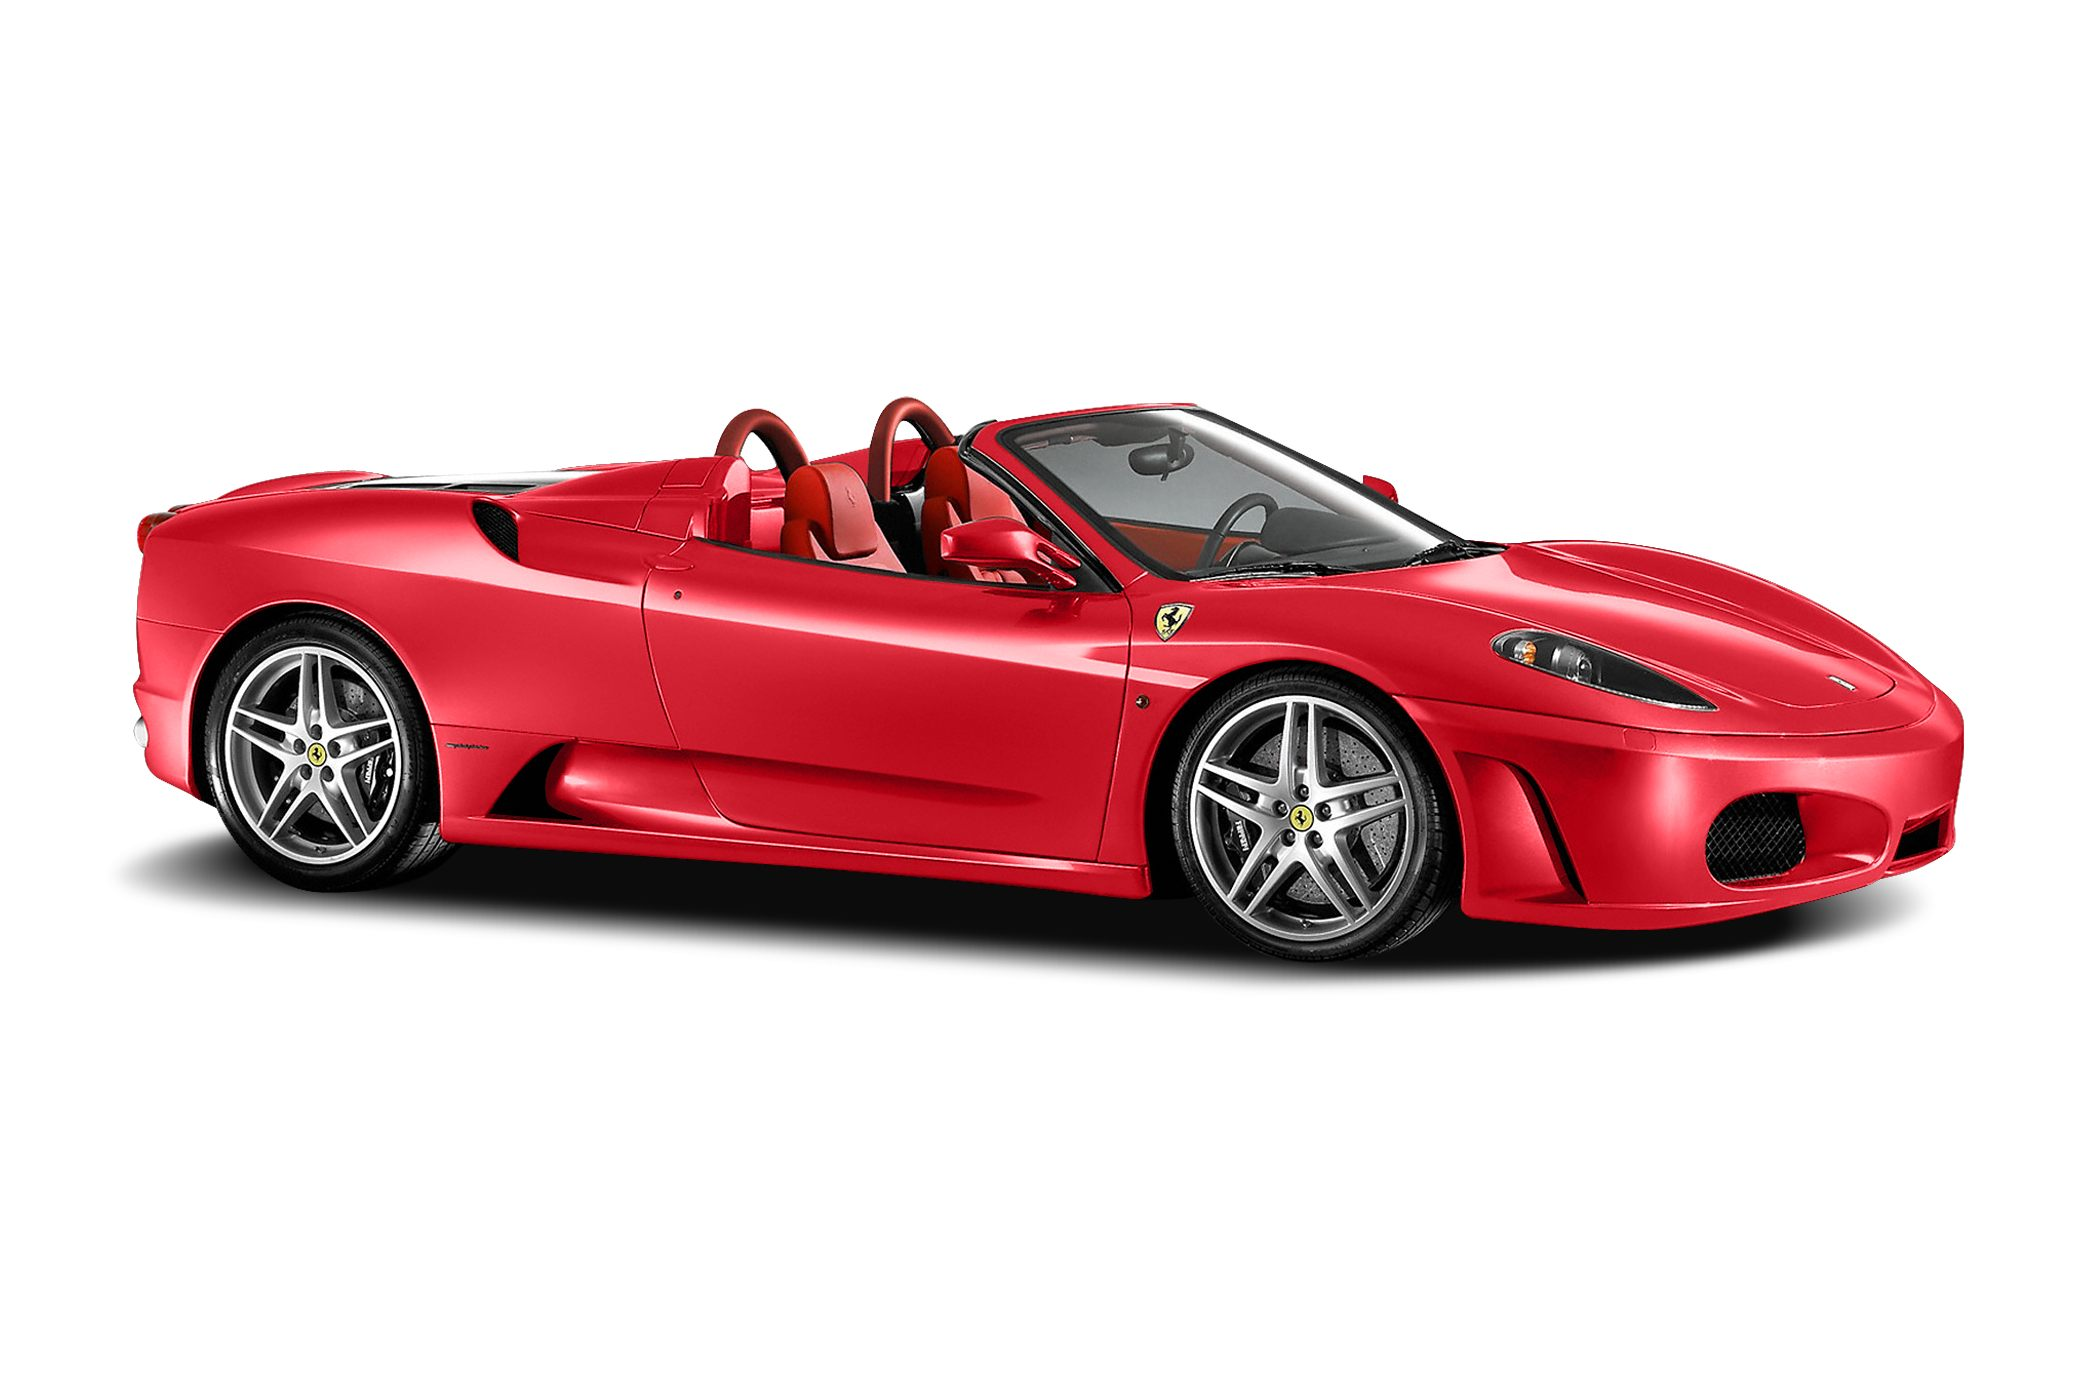 2008 Ferrari F430 Spider Convertible for sale in Birmingham for $159,900 with 12,735 miles.